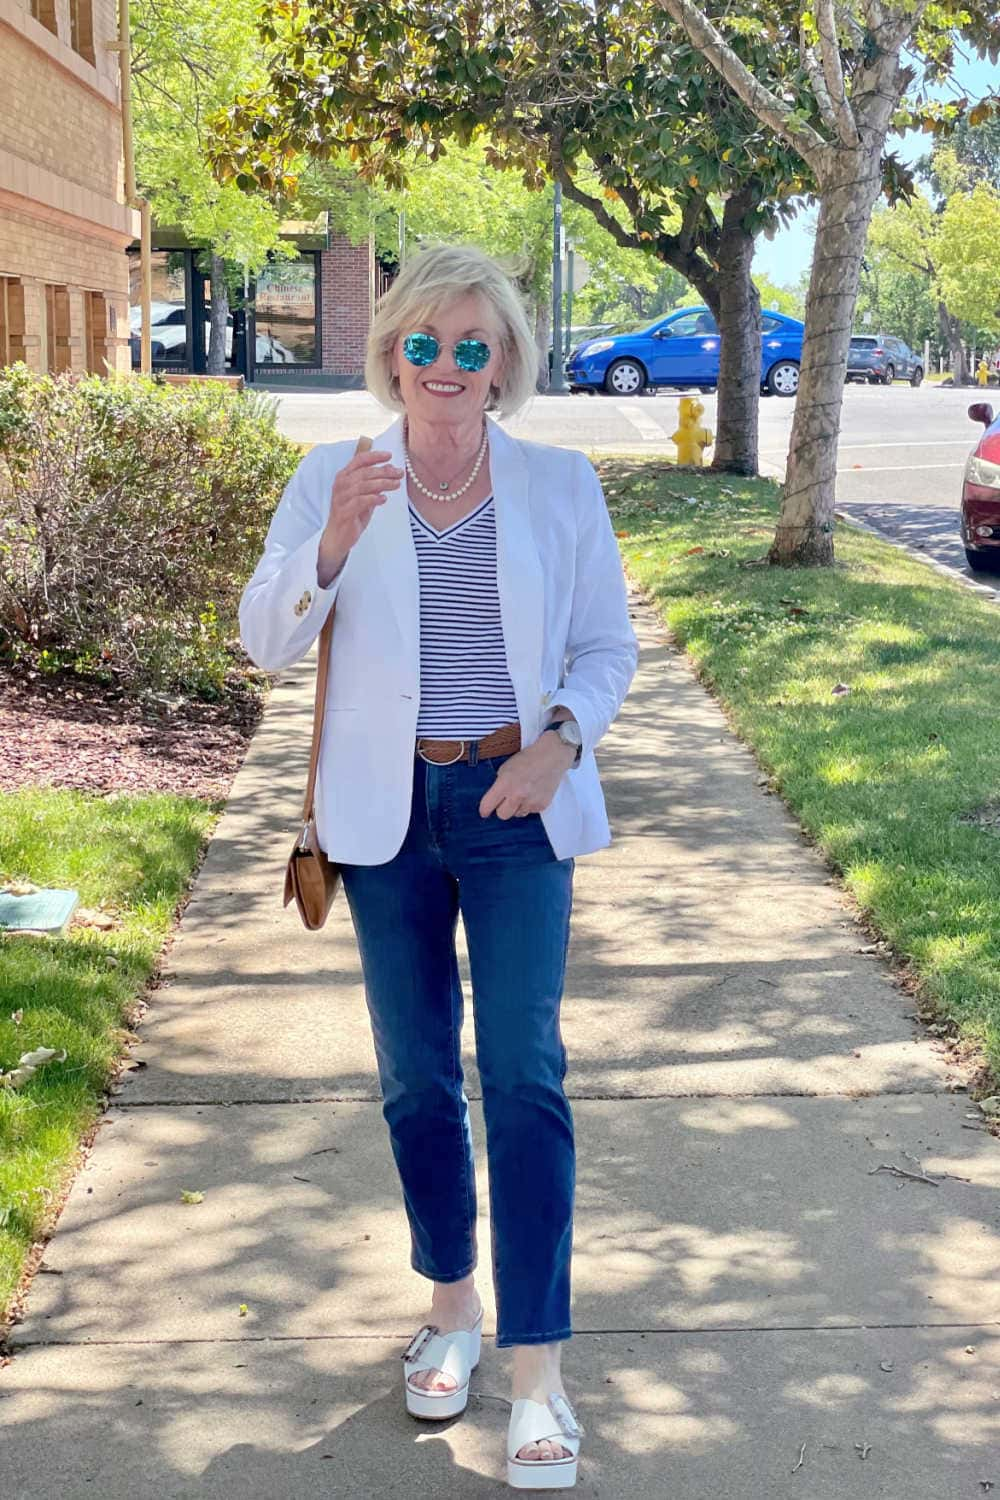 woman walking towards you on sidewalk with mirror sunglasses, white blazer and blue jeans